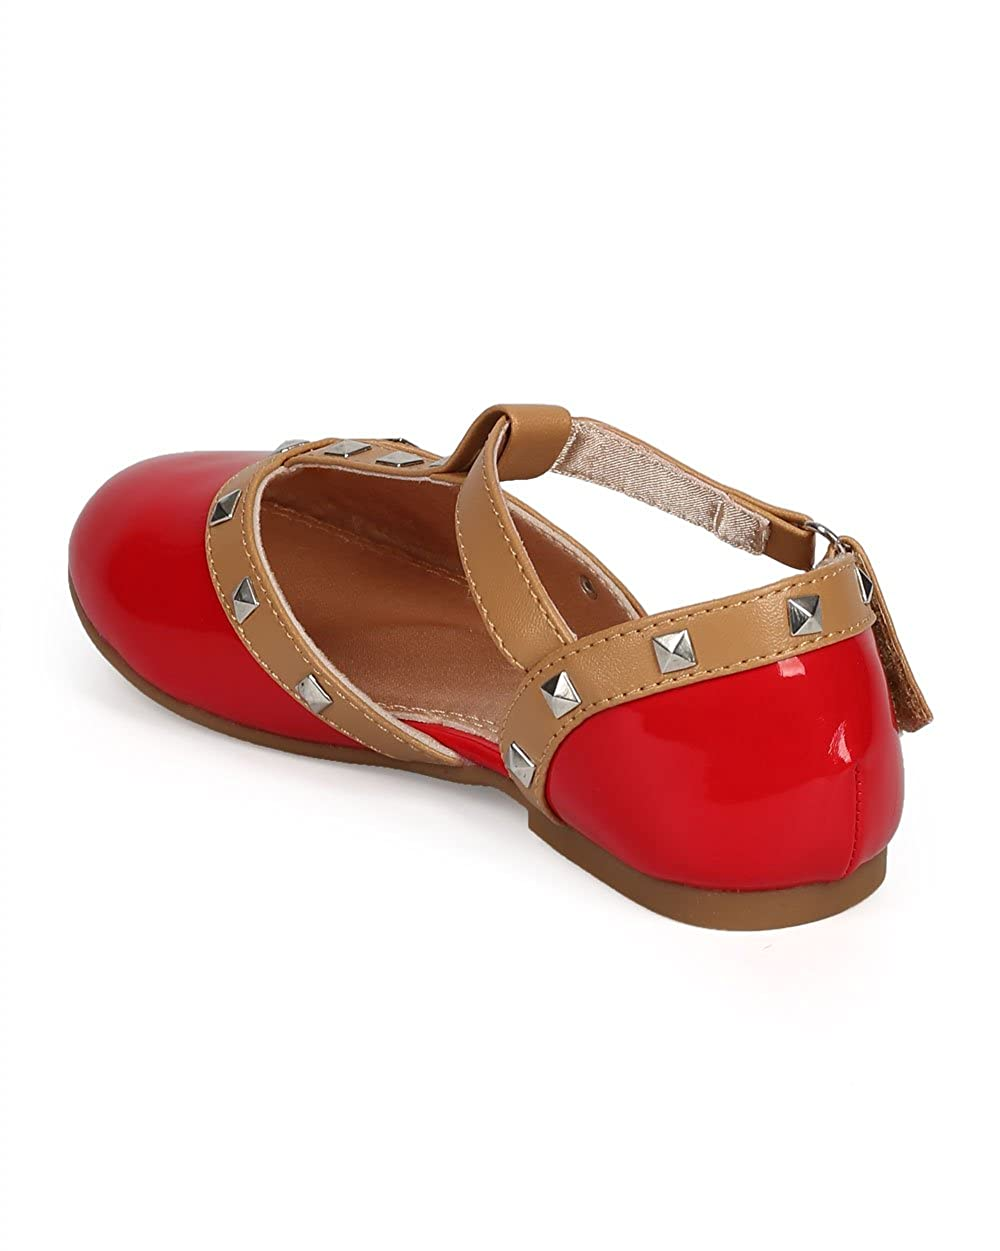 Little Girl//Big Girl Alrisco Patent Round Toe Studded T-Strap Dorsay Ballet Flat DH98 Jelly Beans